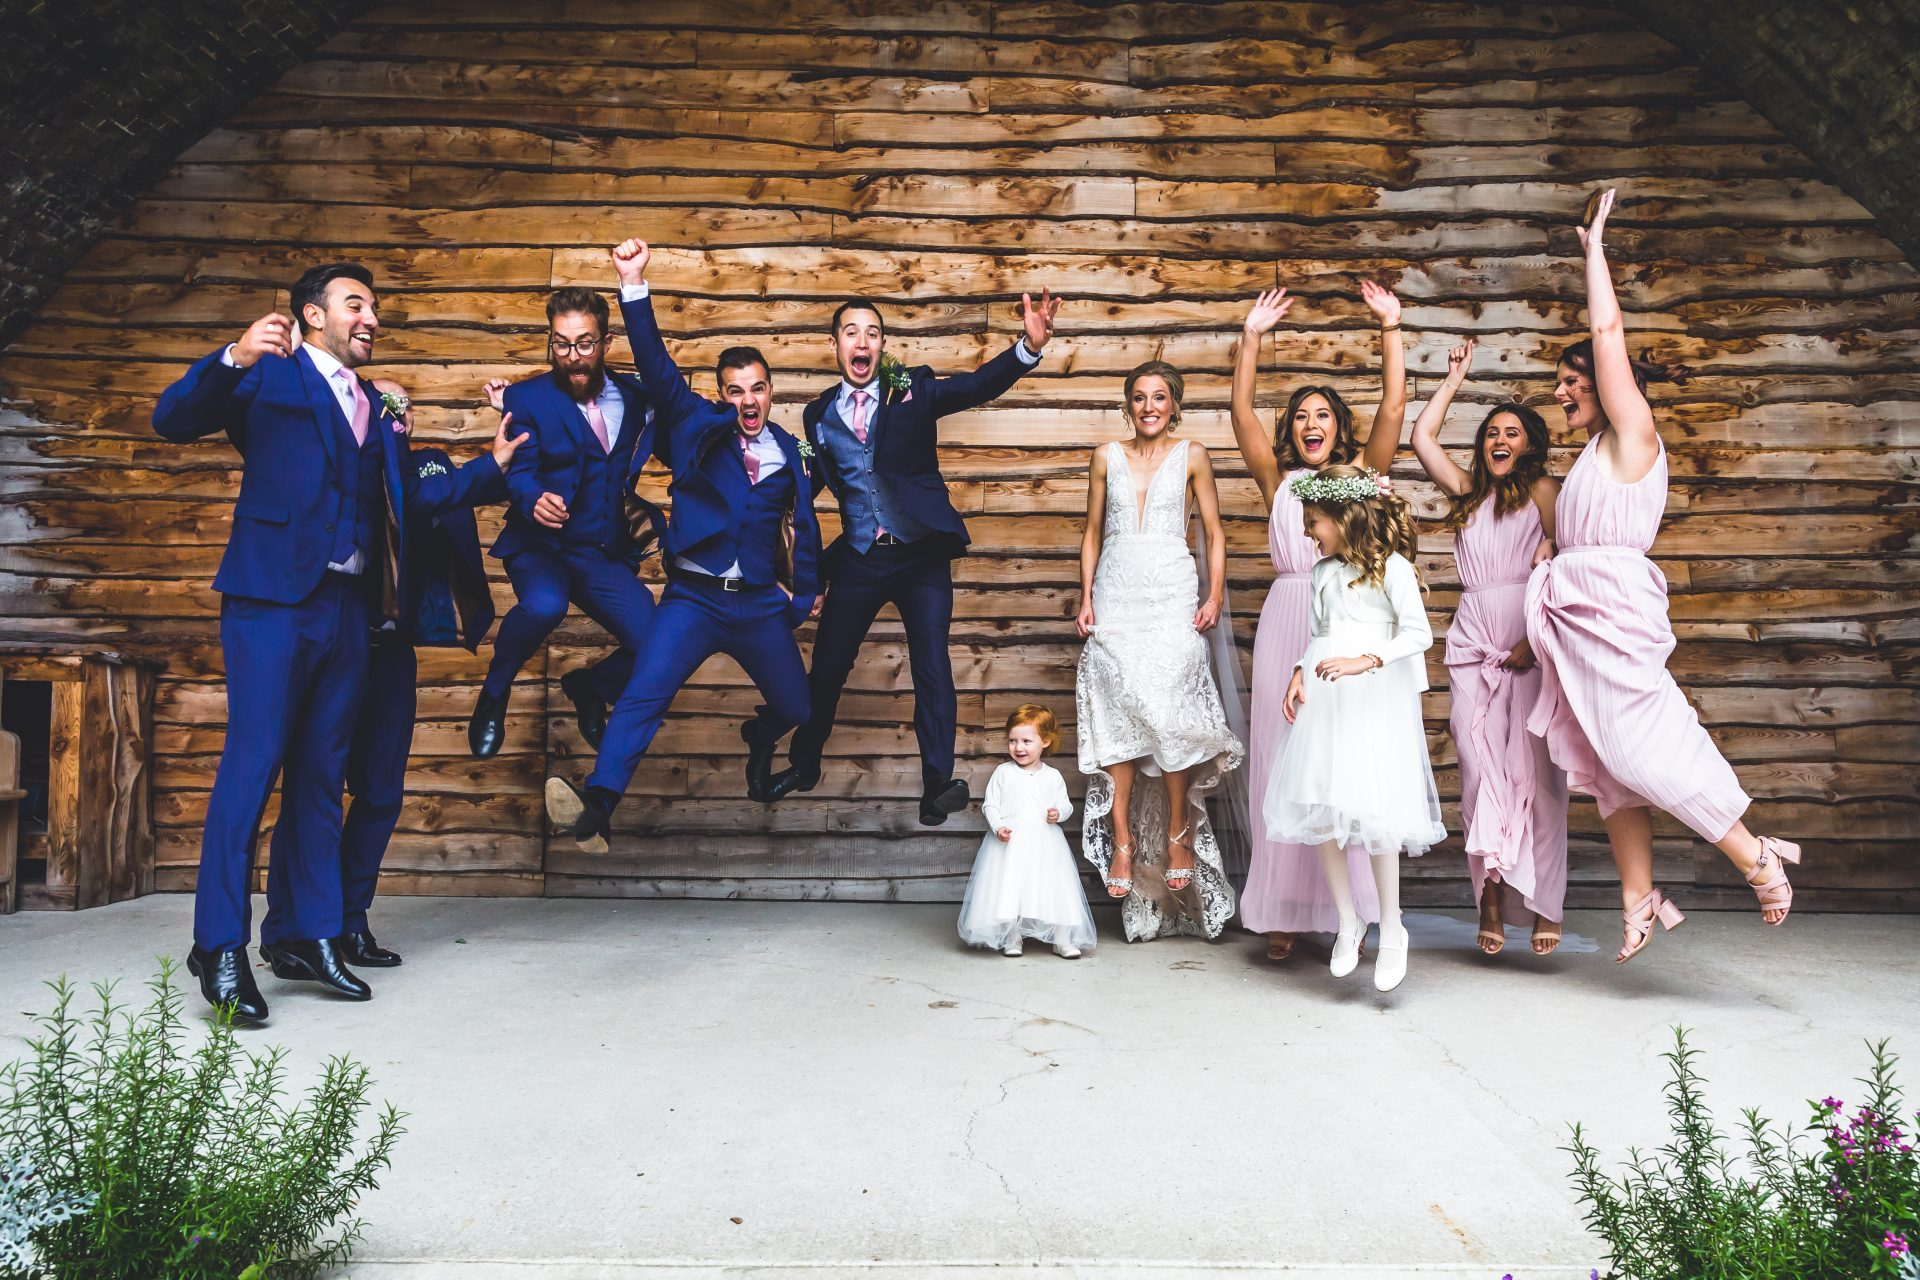 Group shot of bride and groom with grooms men and bridesmaids jumping in the air